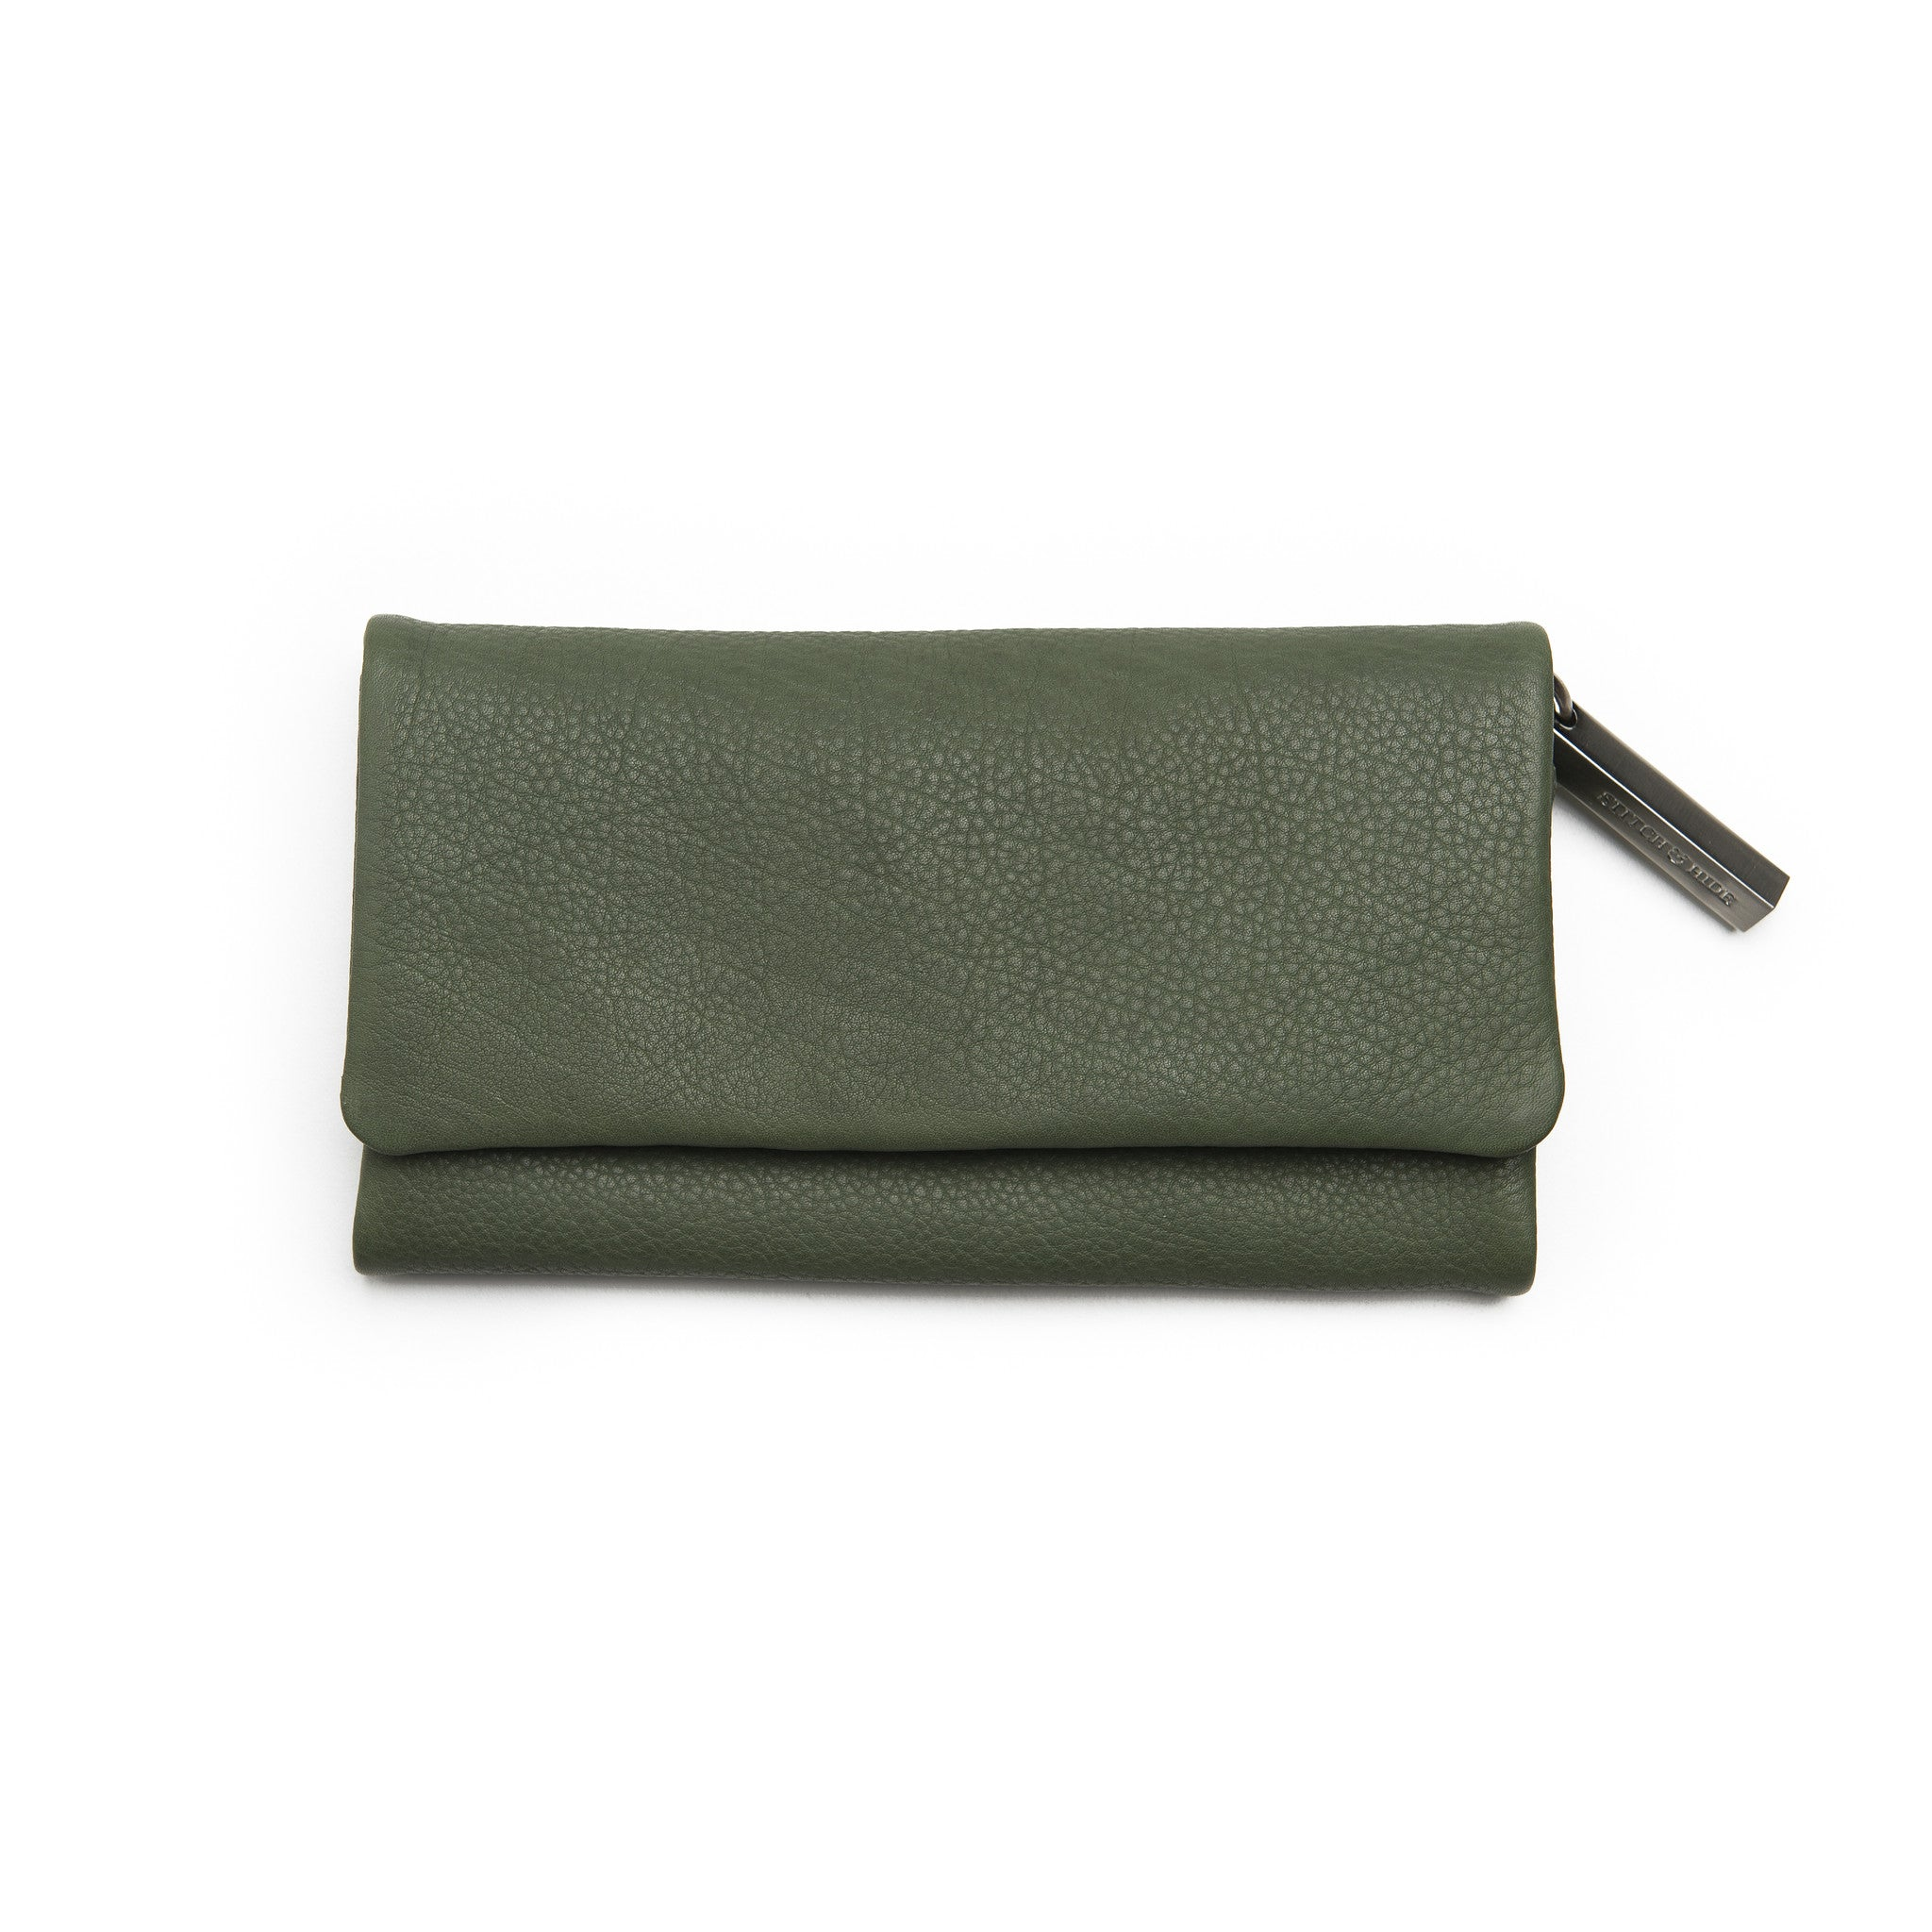 STITCH & HIDE - PAIGET WALLET OLIVE